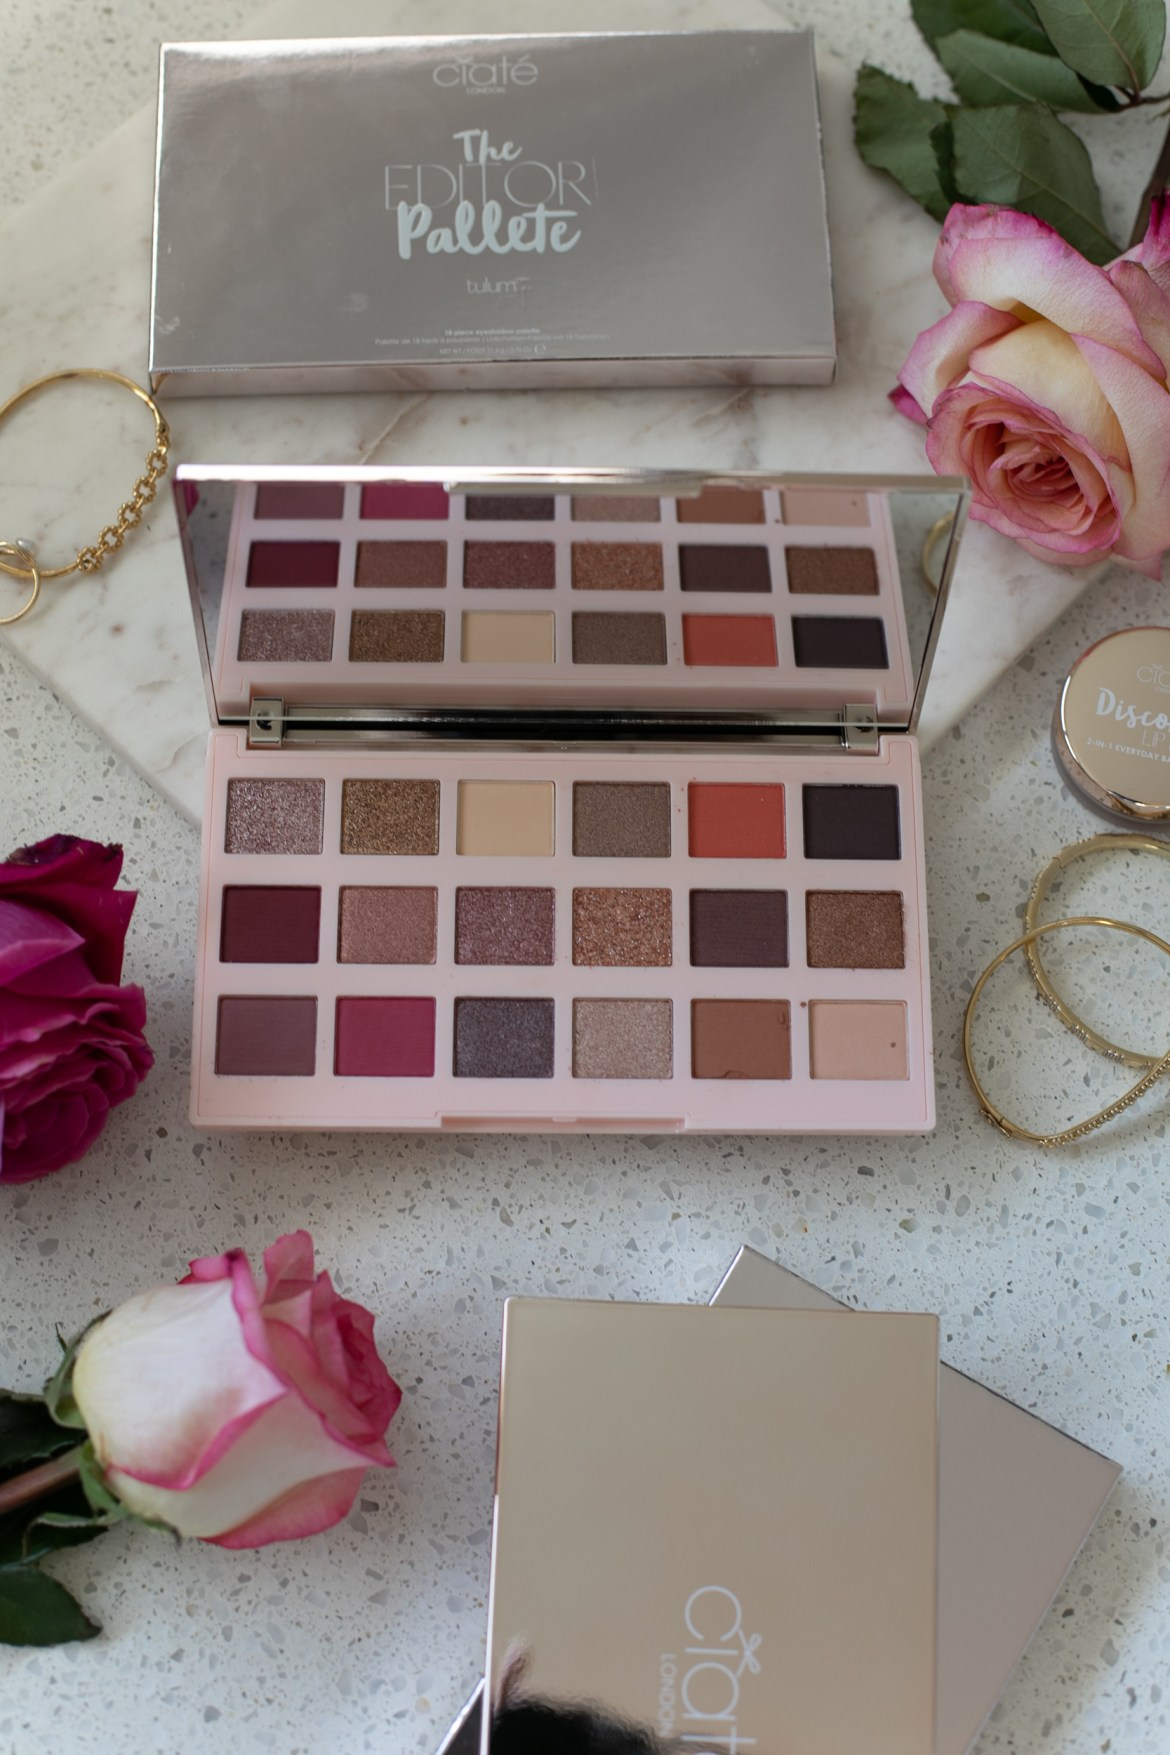 Ciate London The Editor Palette in Tulum for a casual beauty look for Valentine's day